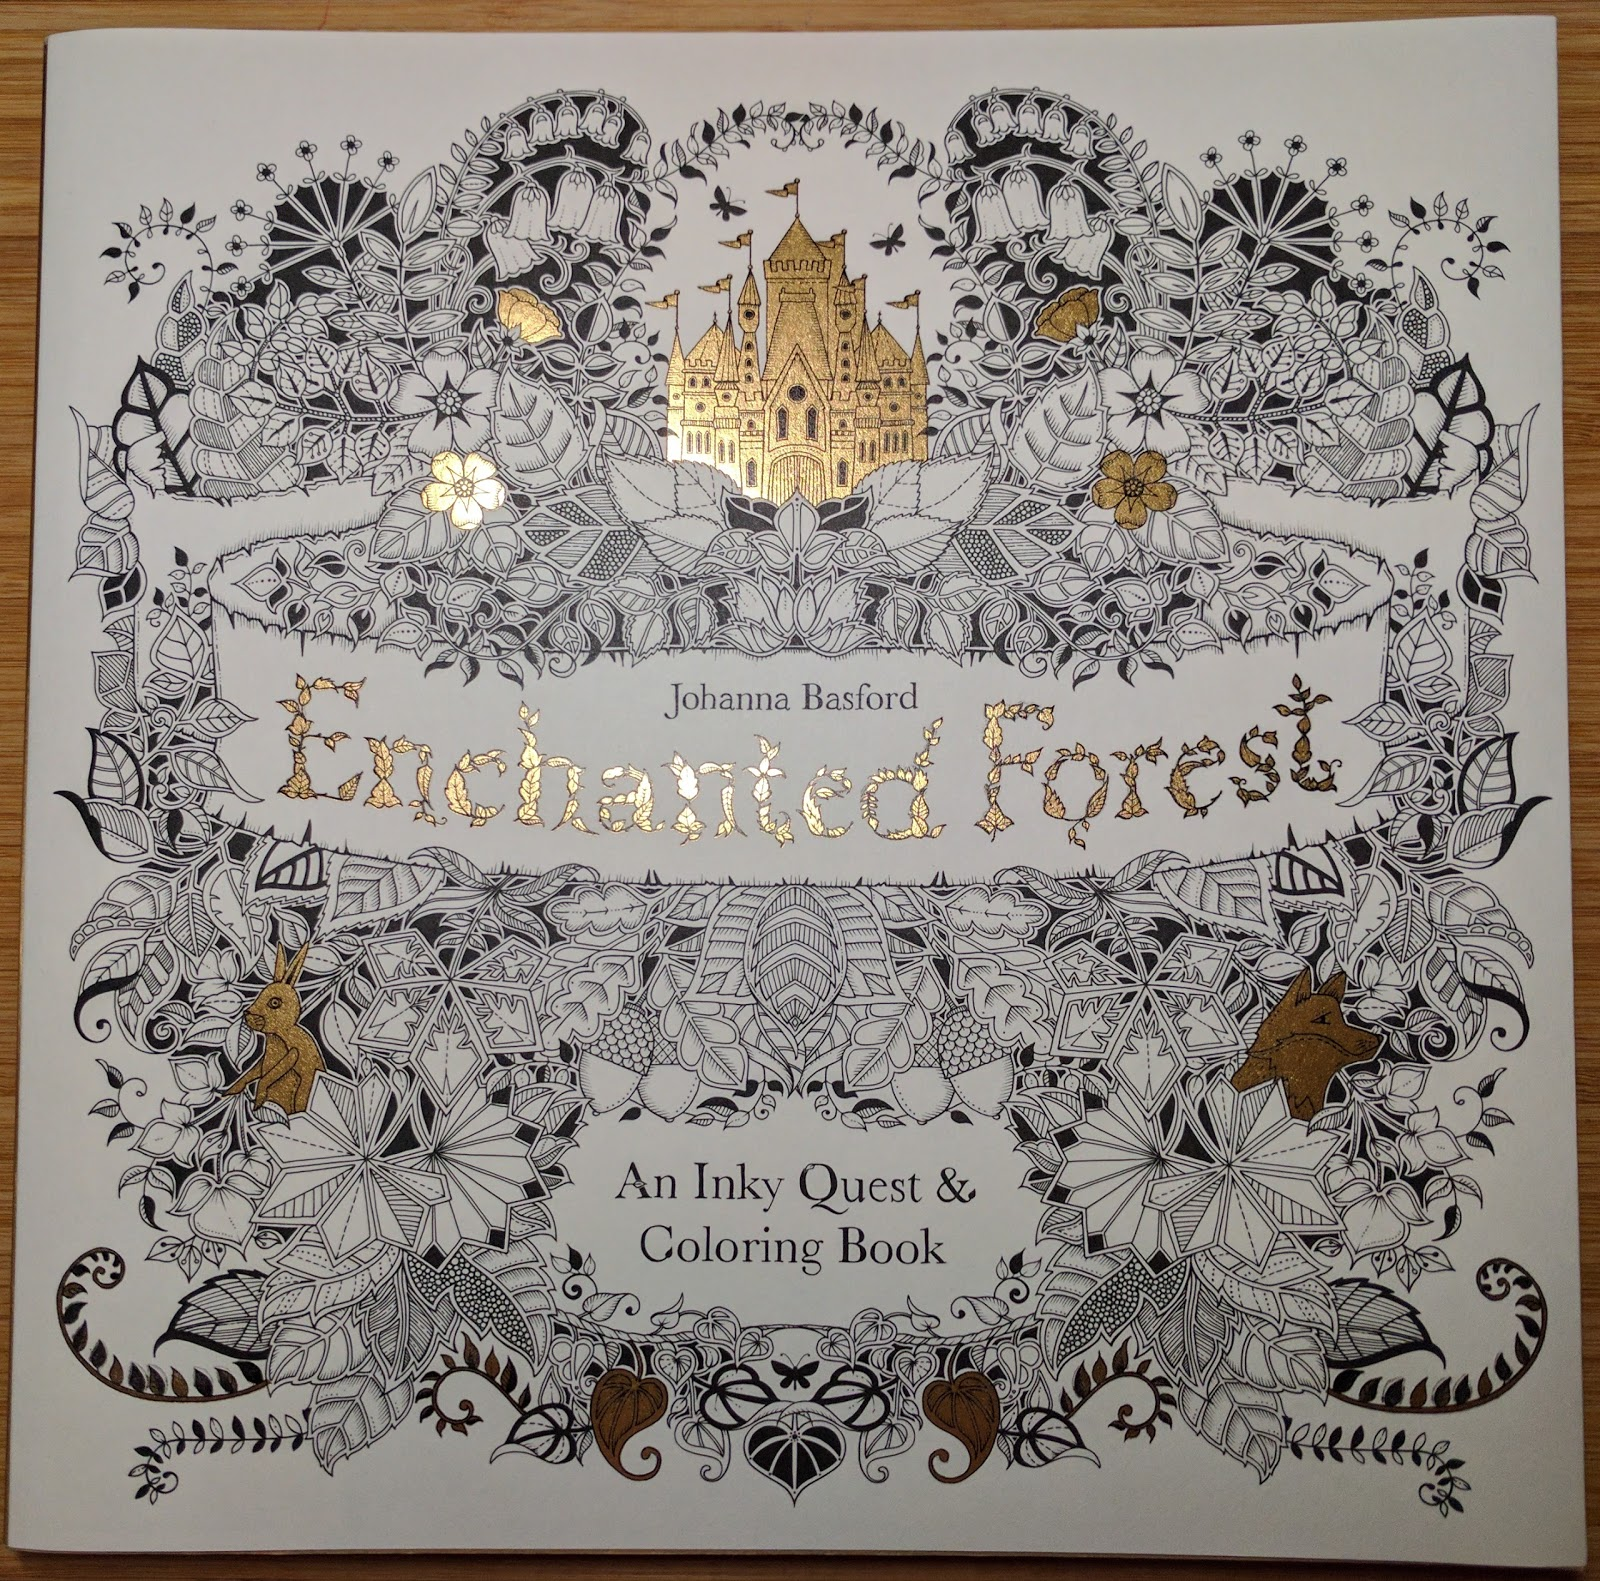 Like Most Coloring Books Enchanted Forest Is Available On Amazon Johannas Always Include A Hidden Object Type Of Game Where She Includes Certain